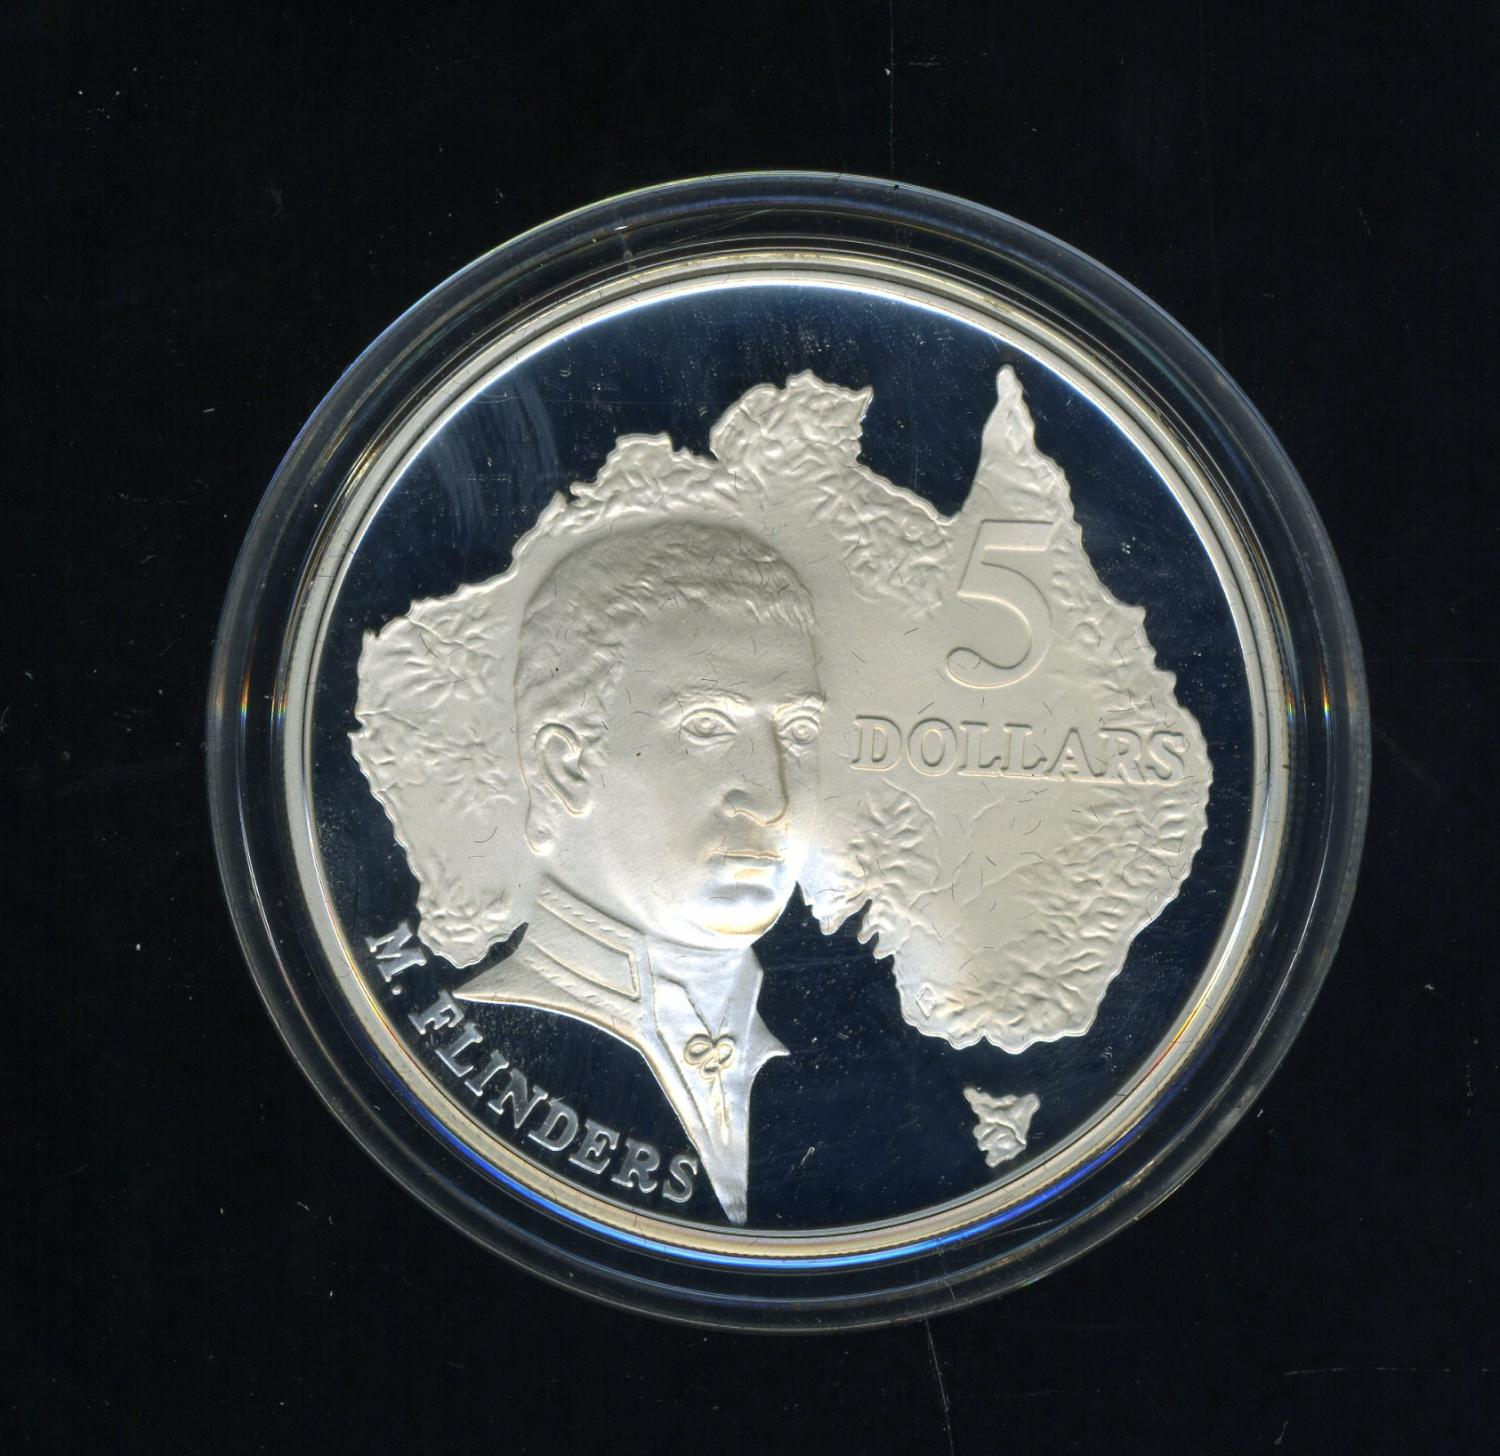 Thumbnail for 1993 Australian $5 Silver Coin from Masterpieces in Silver Set - Matthew Flinders.  The Coin is Sterling Silver and contains over 1oz of Pure Silver.